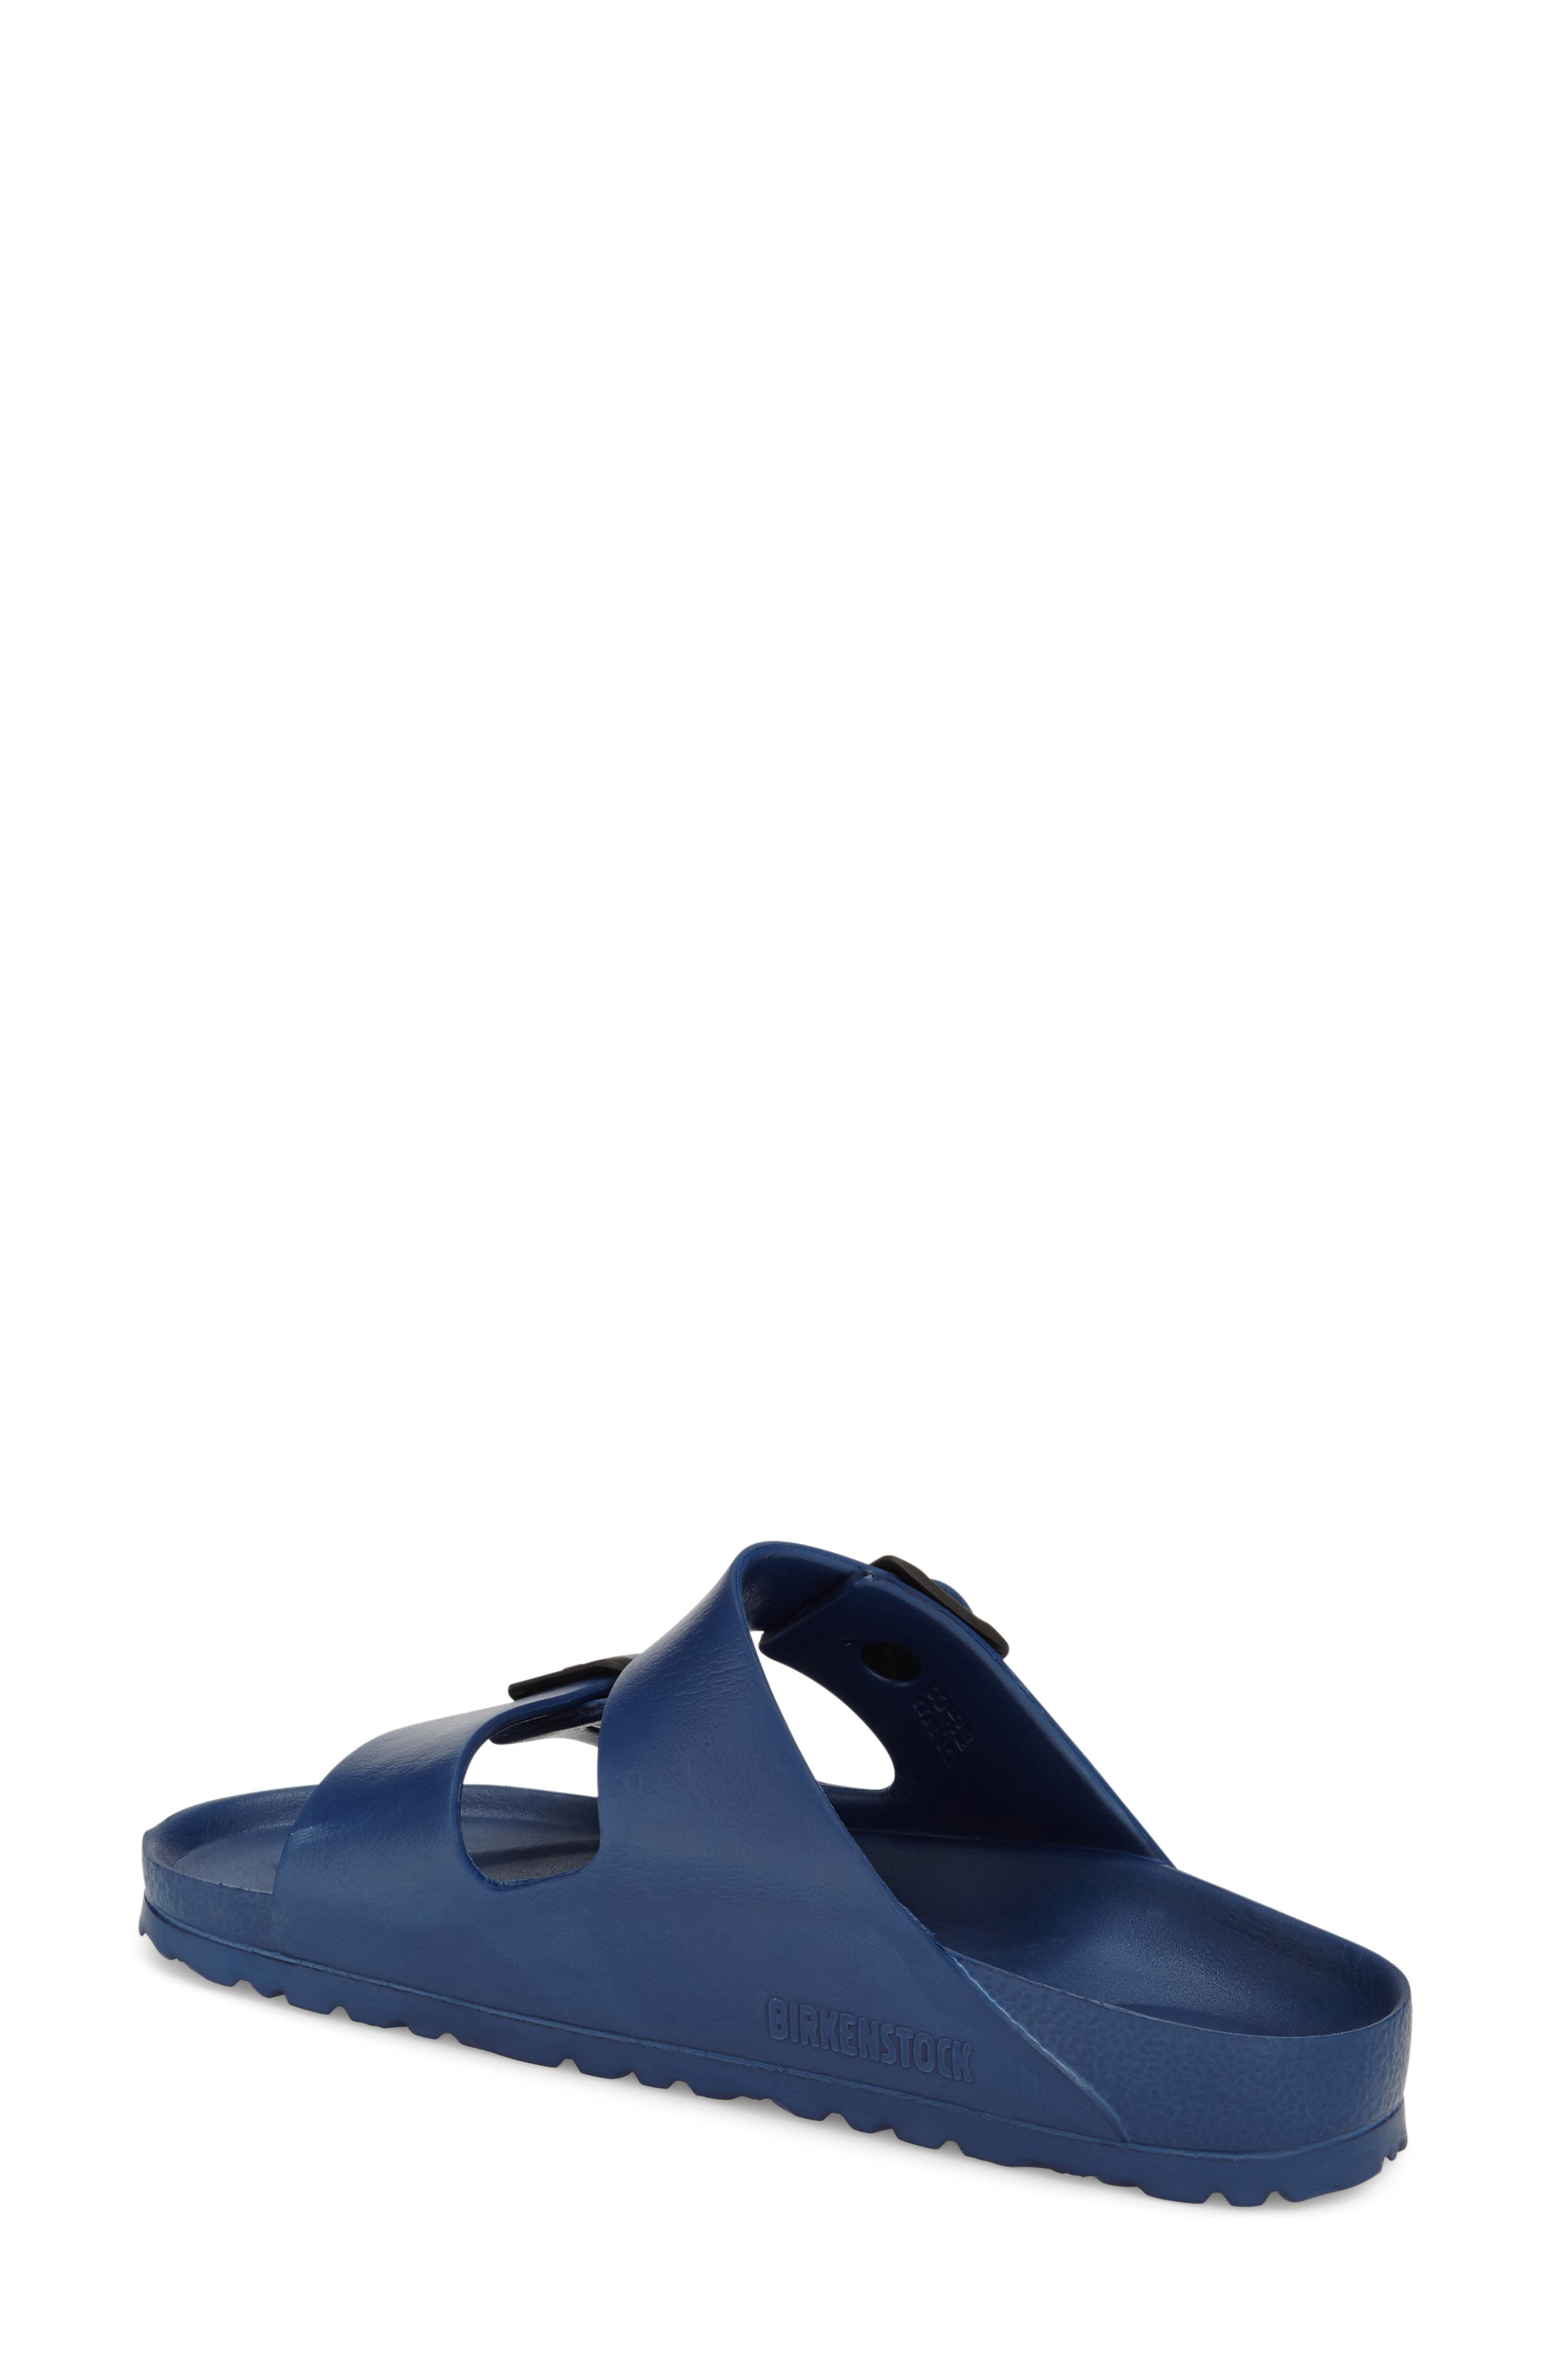 Essentials - Arizona Slide Sandal,                             Alternate thumbnail 2, color,                             NAVY EVA